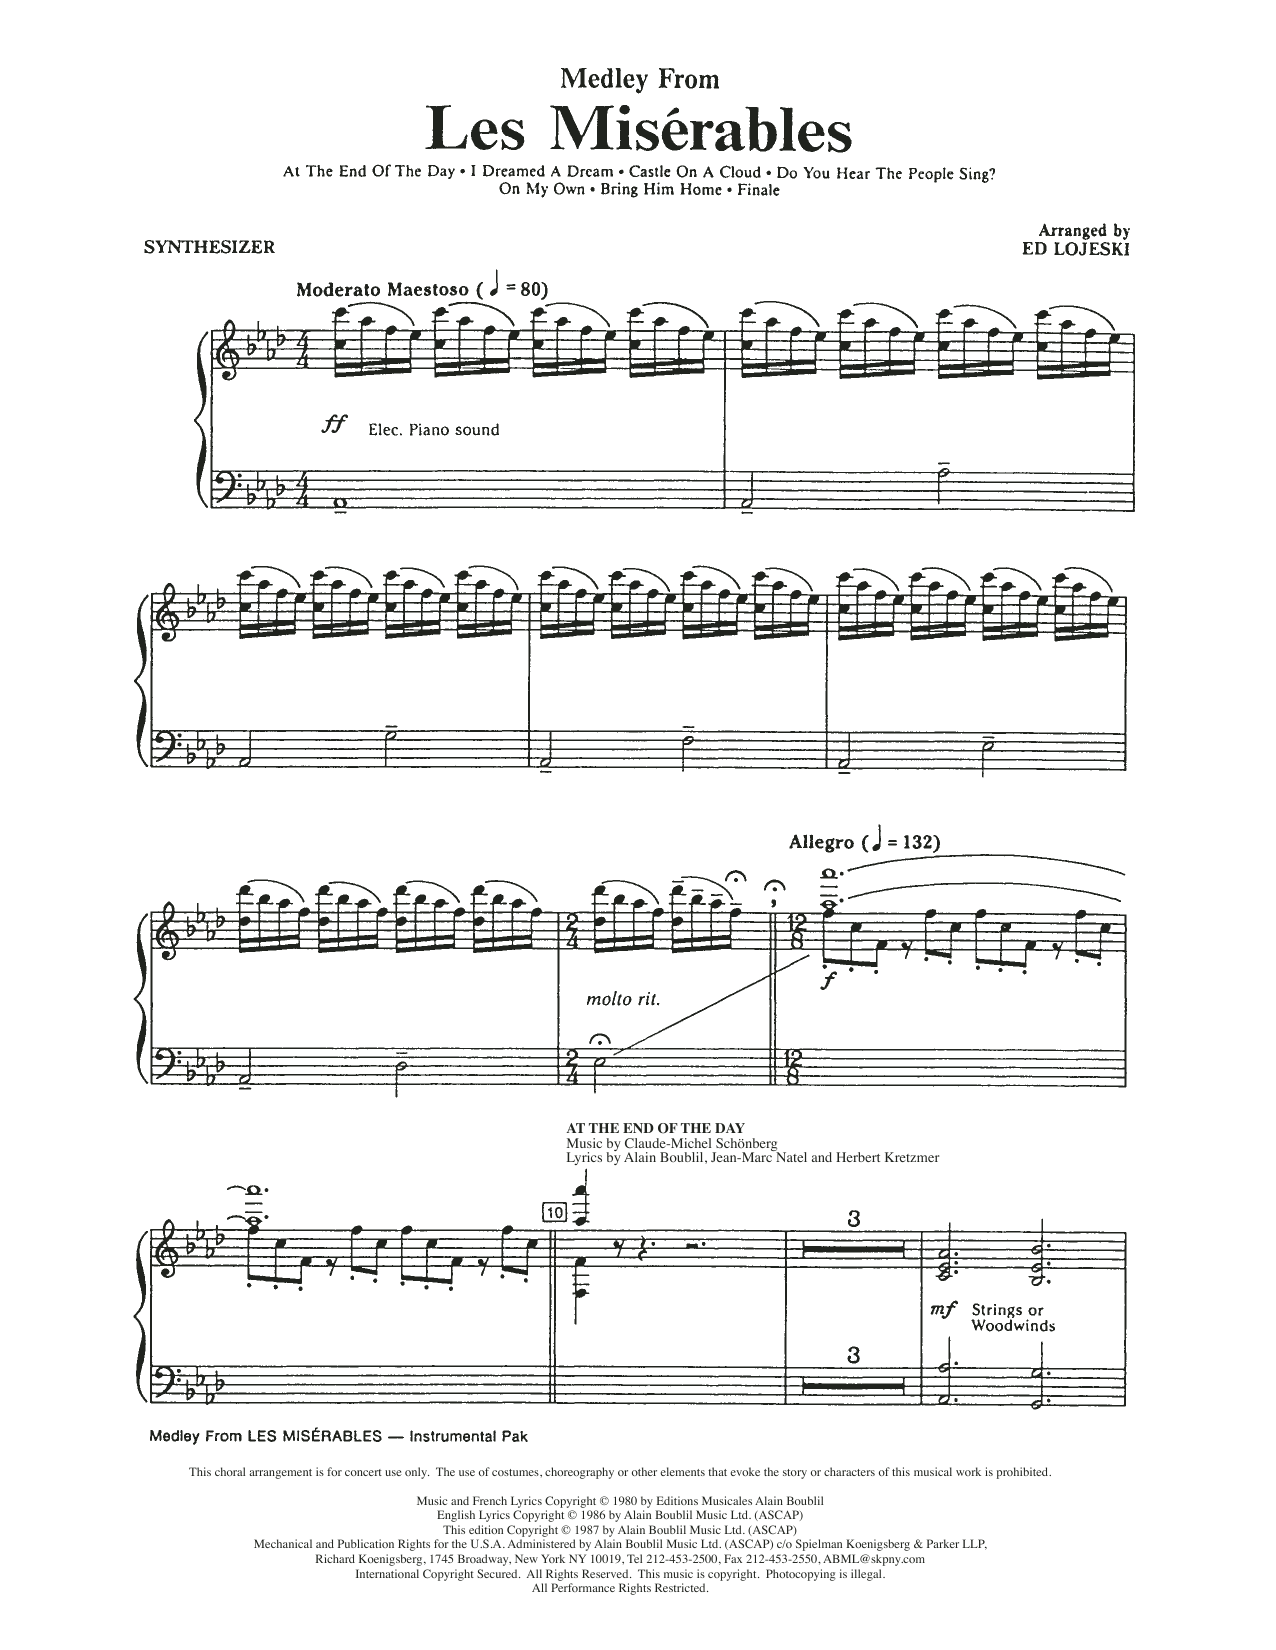 Les Miserables (Choral Medley) (arr. Ed Lojeski) - Synthesizer (Choir Instrumental Pak)